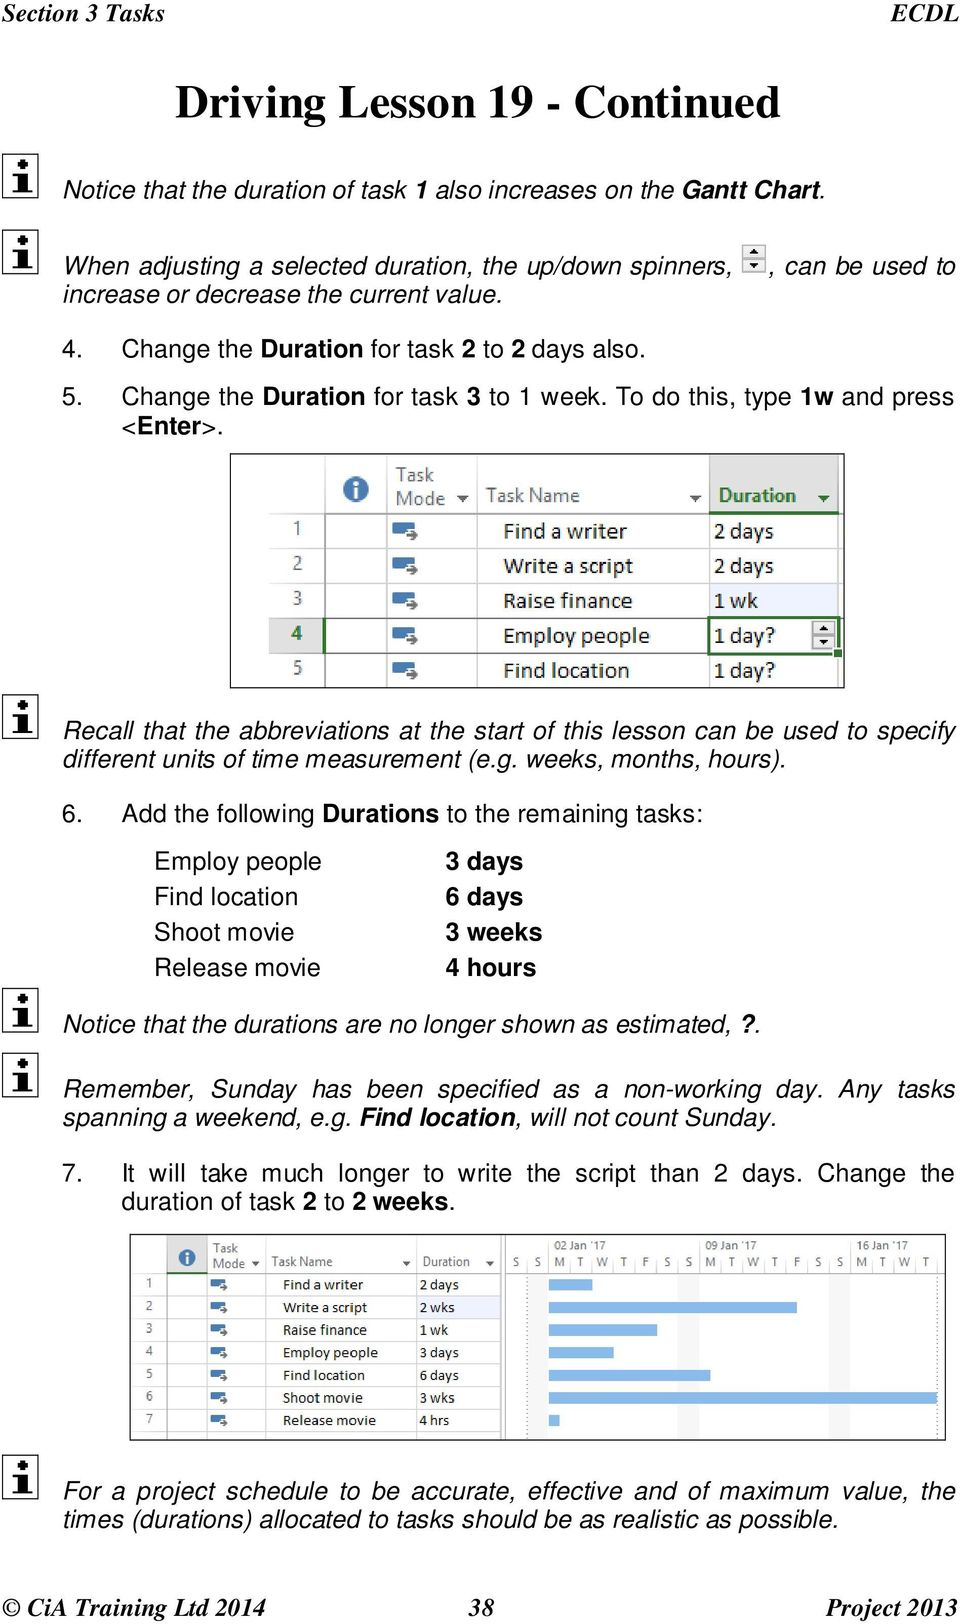 Change the Duration for task 3 to 1 week. To do this, type 1w and press <Enter>.